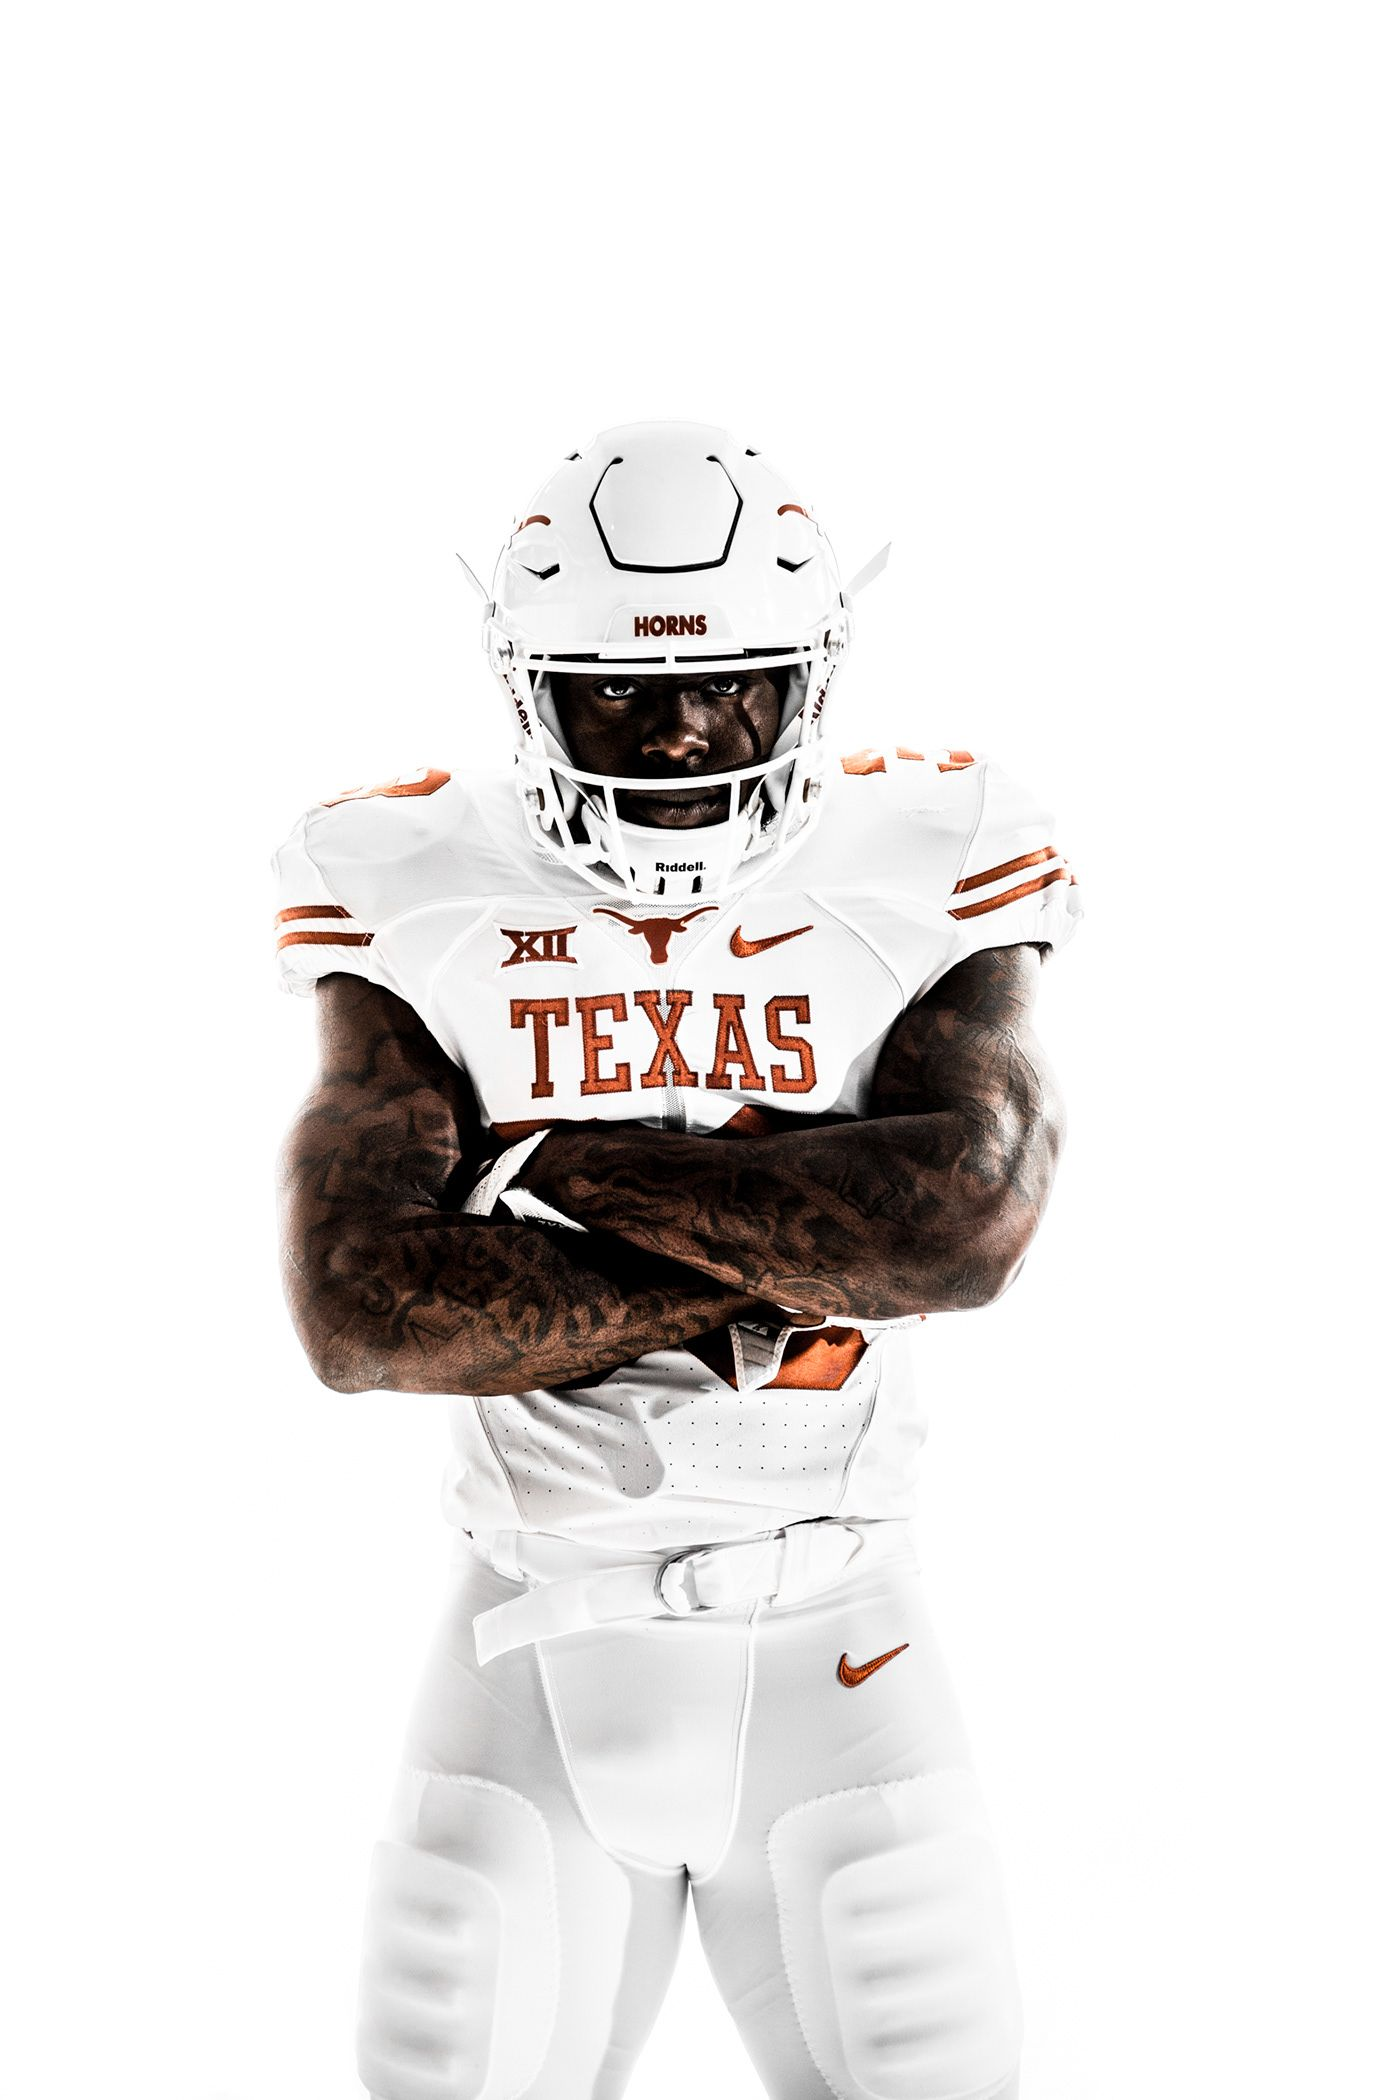 Pin By Slabedits On Photoshoot Poses Longhorns Football Texas Longhorns Football Football Poses